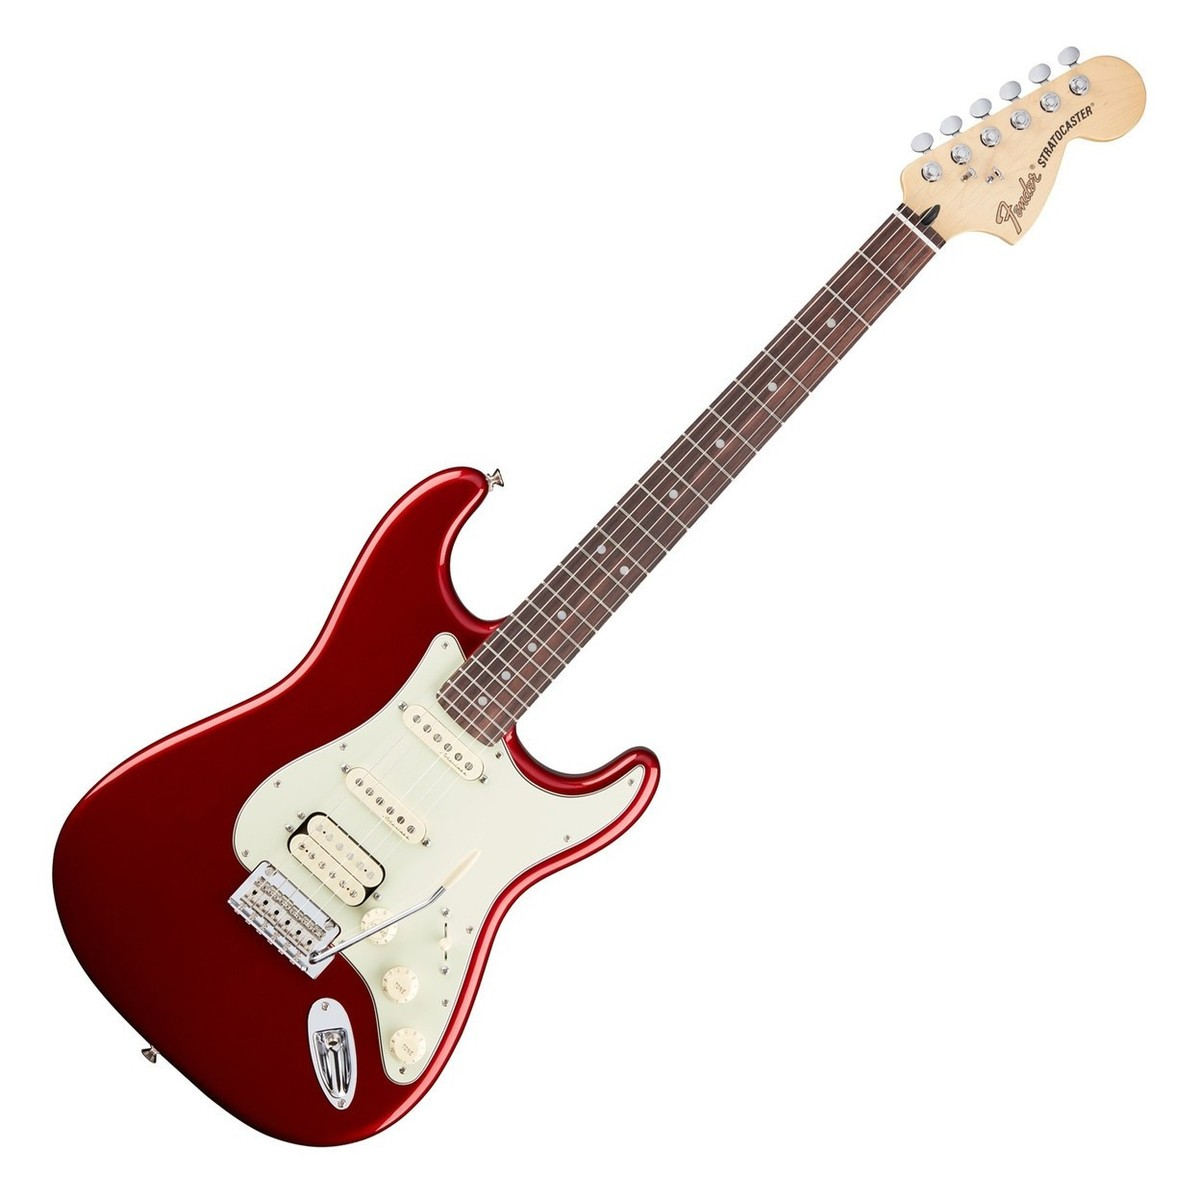 fender deluxe stratocaster hss pf candy apple red at gear4music. Black Bedroom Furniture Sets. Home Design Ideas